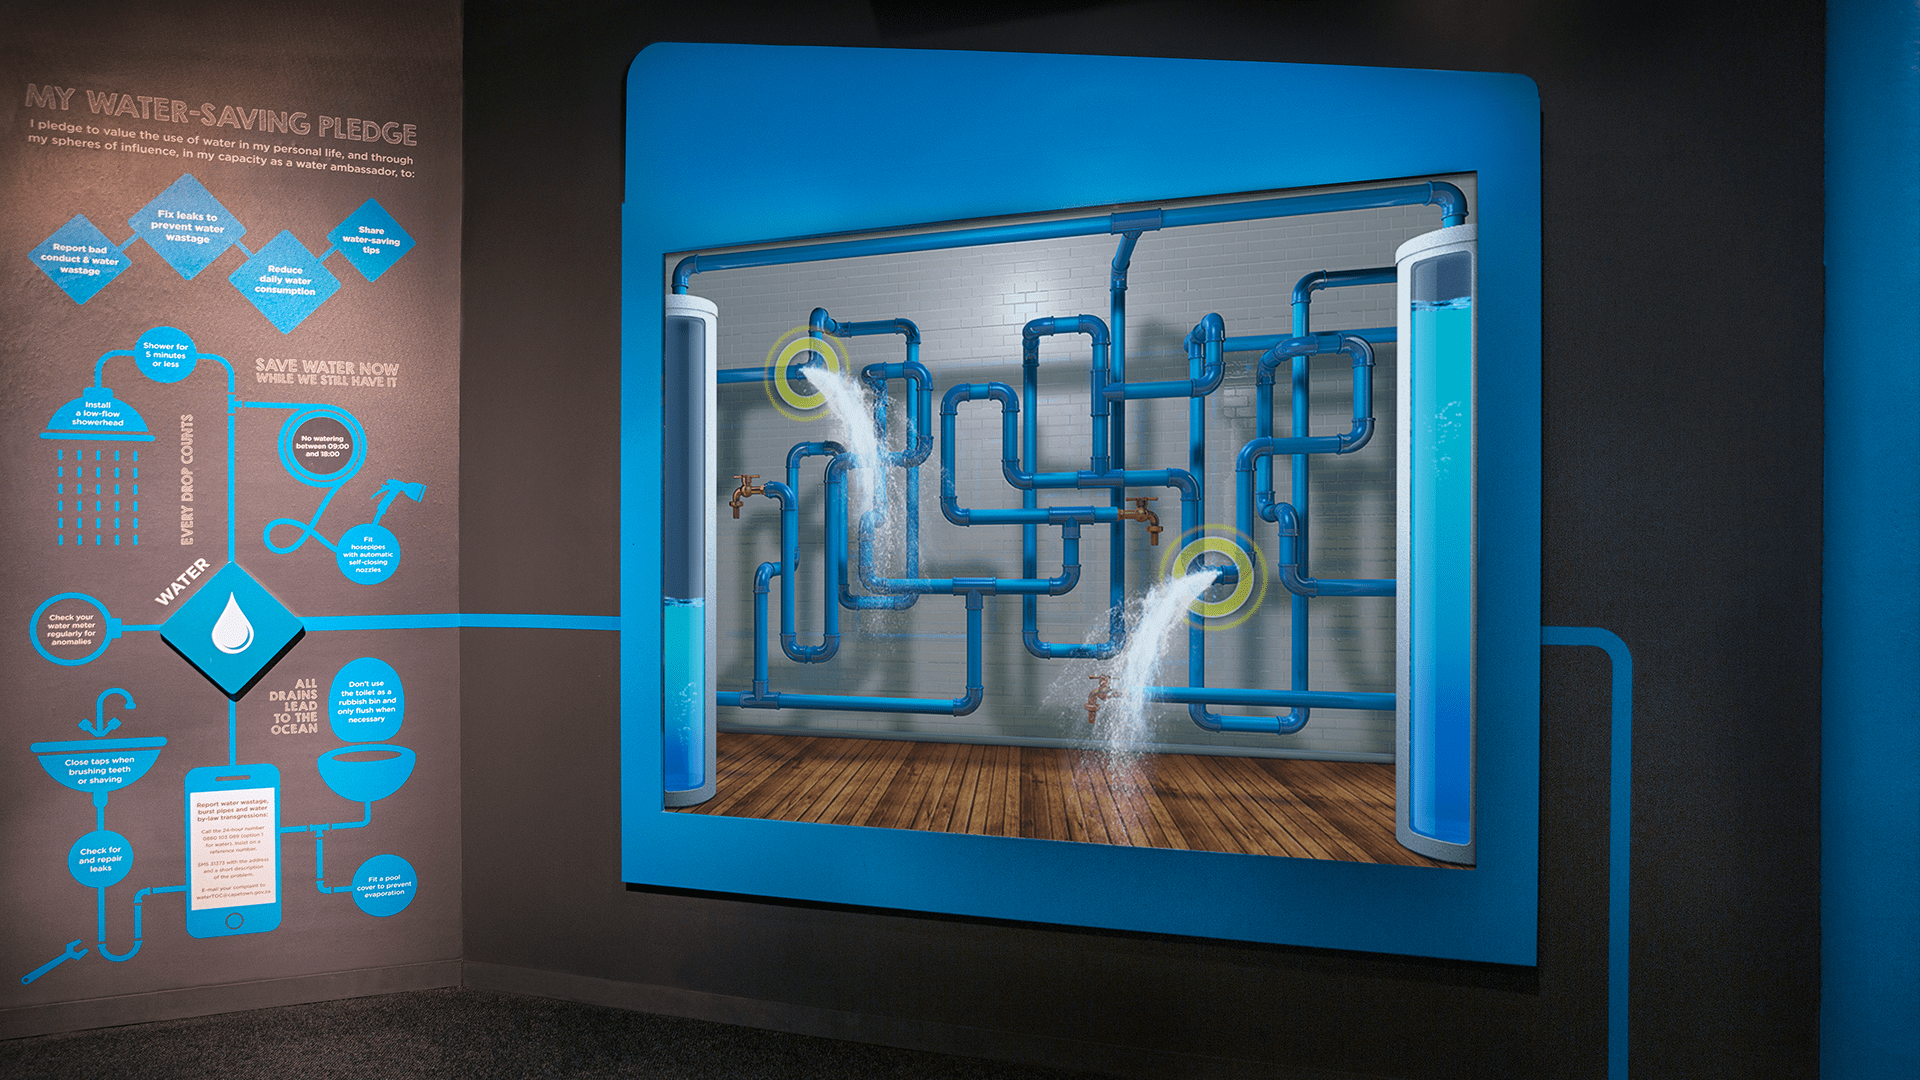 Smart Living Water Saver Exhibit created by Formula D interactive